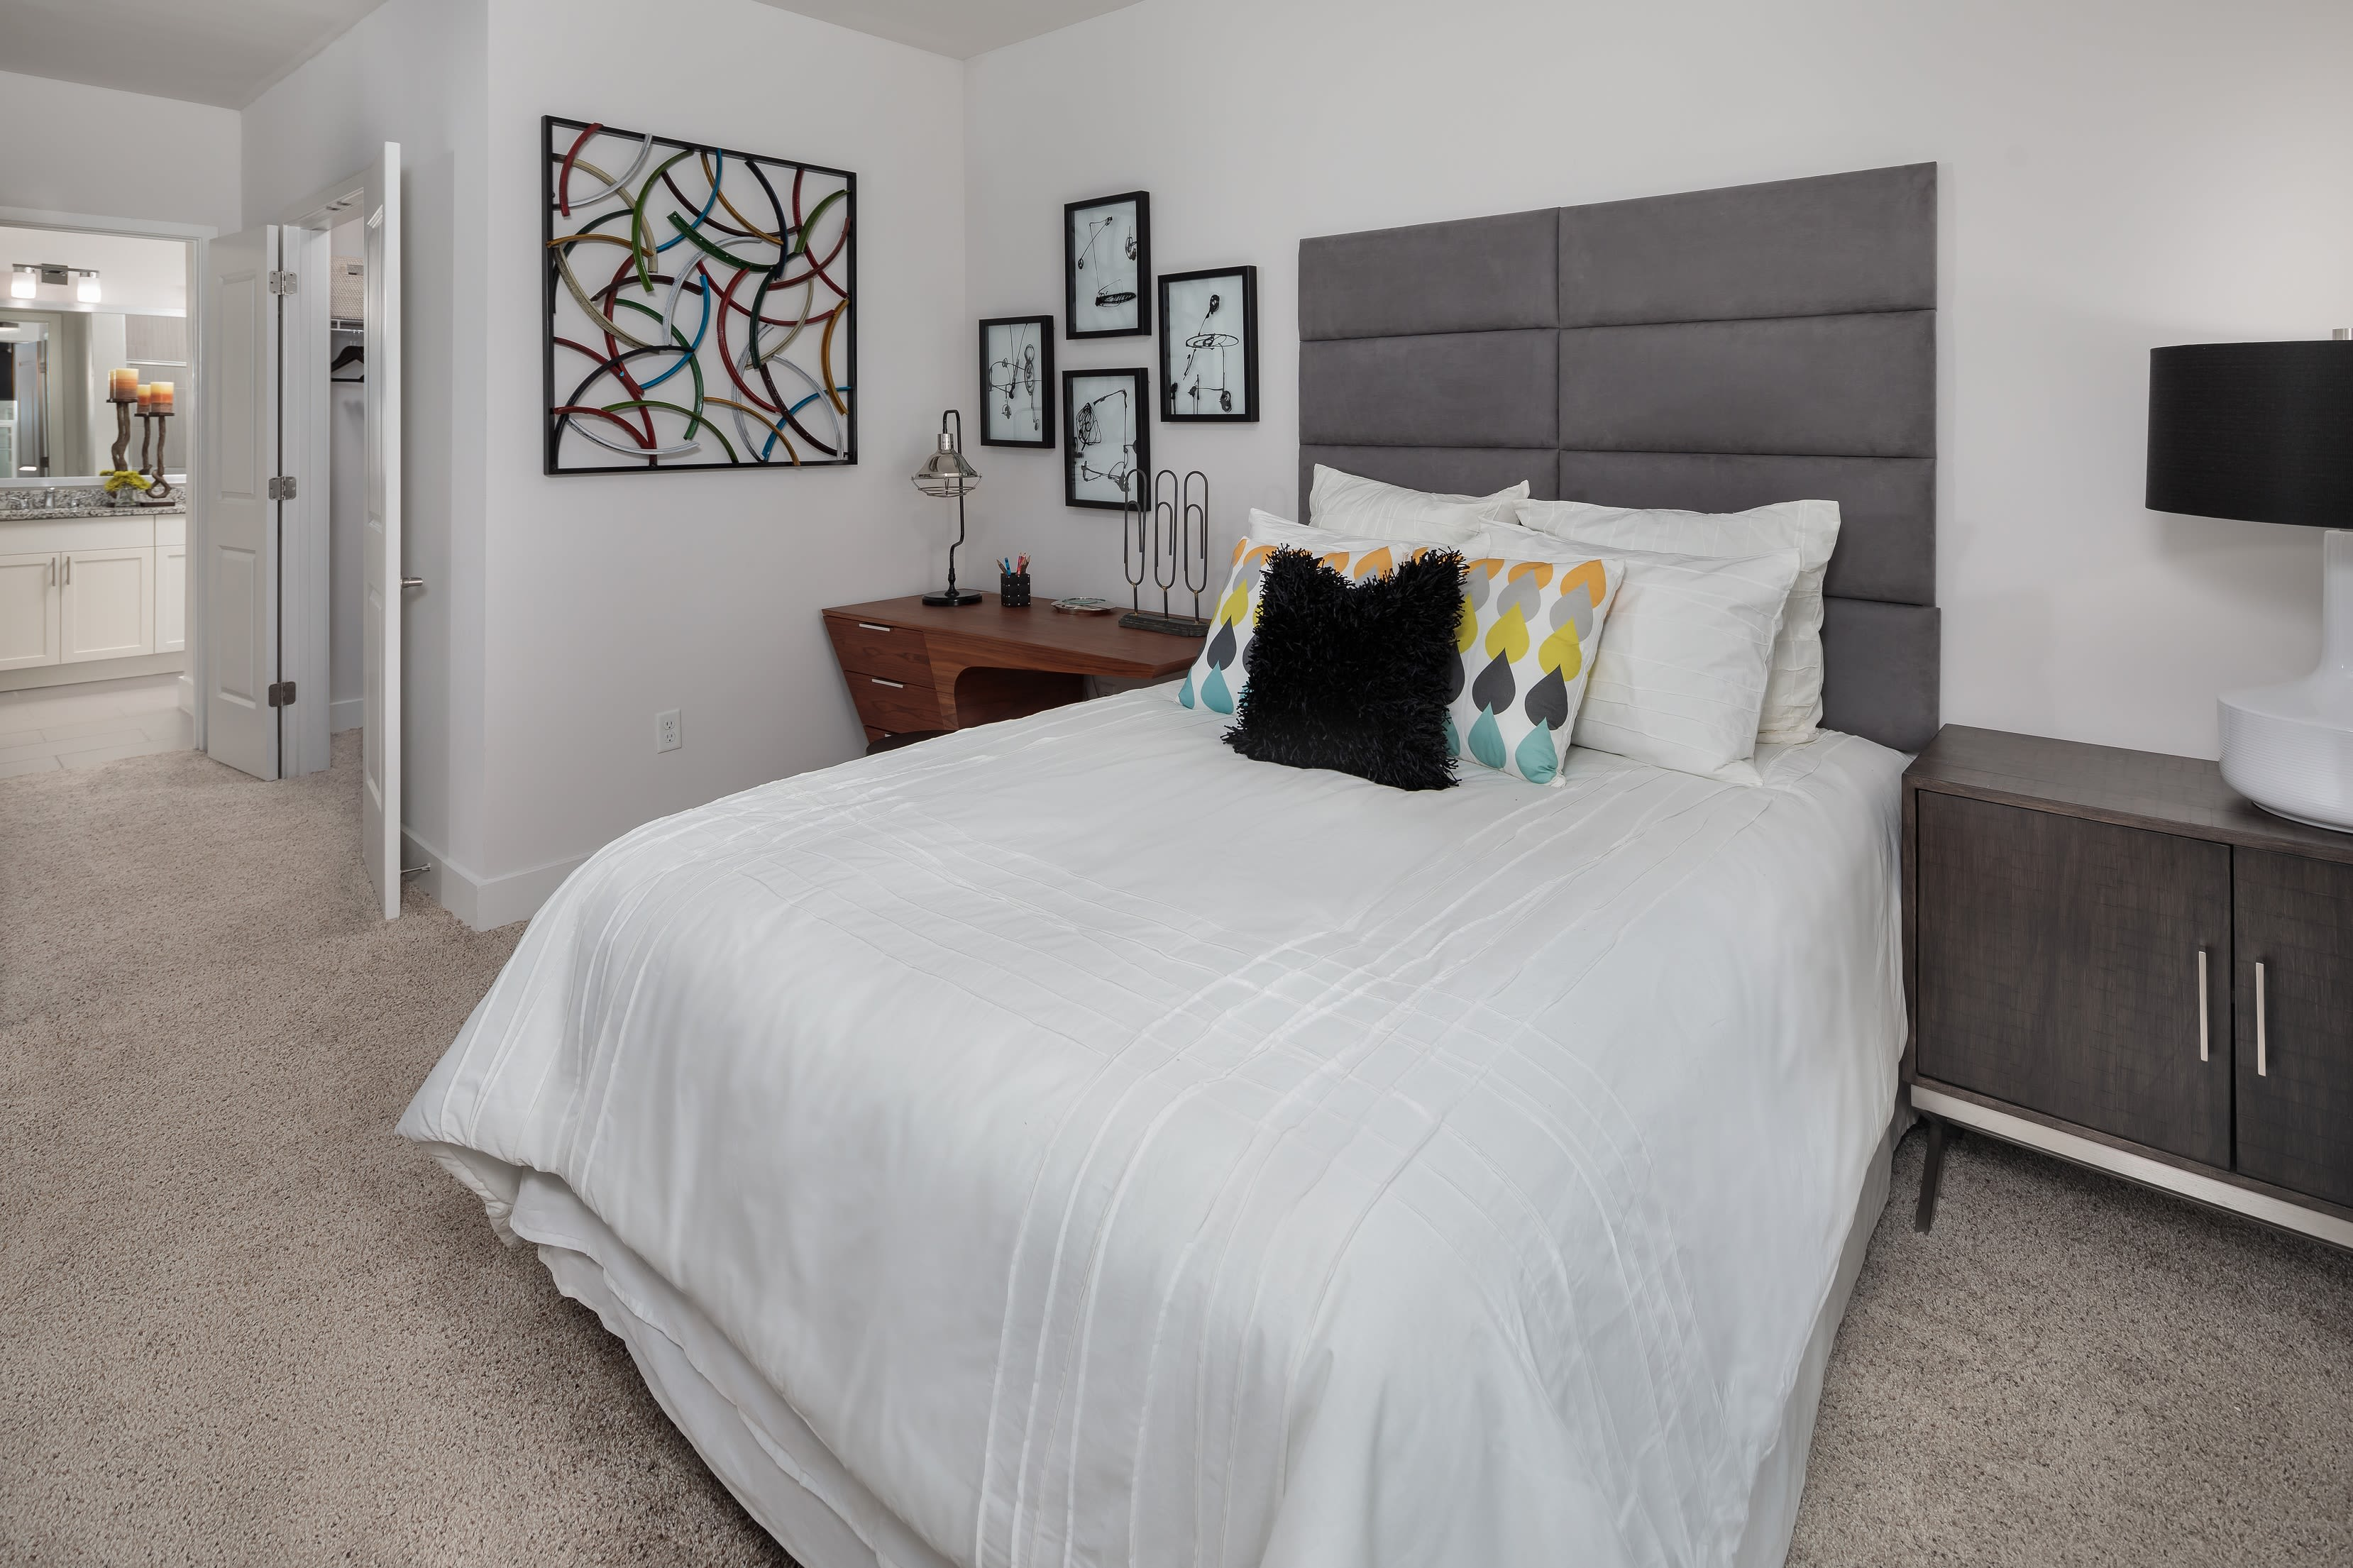 Decorated bedroom with large windows and carpeted floors at Central Station on Orange in Orlando, Florida